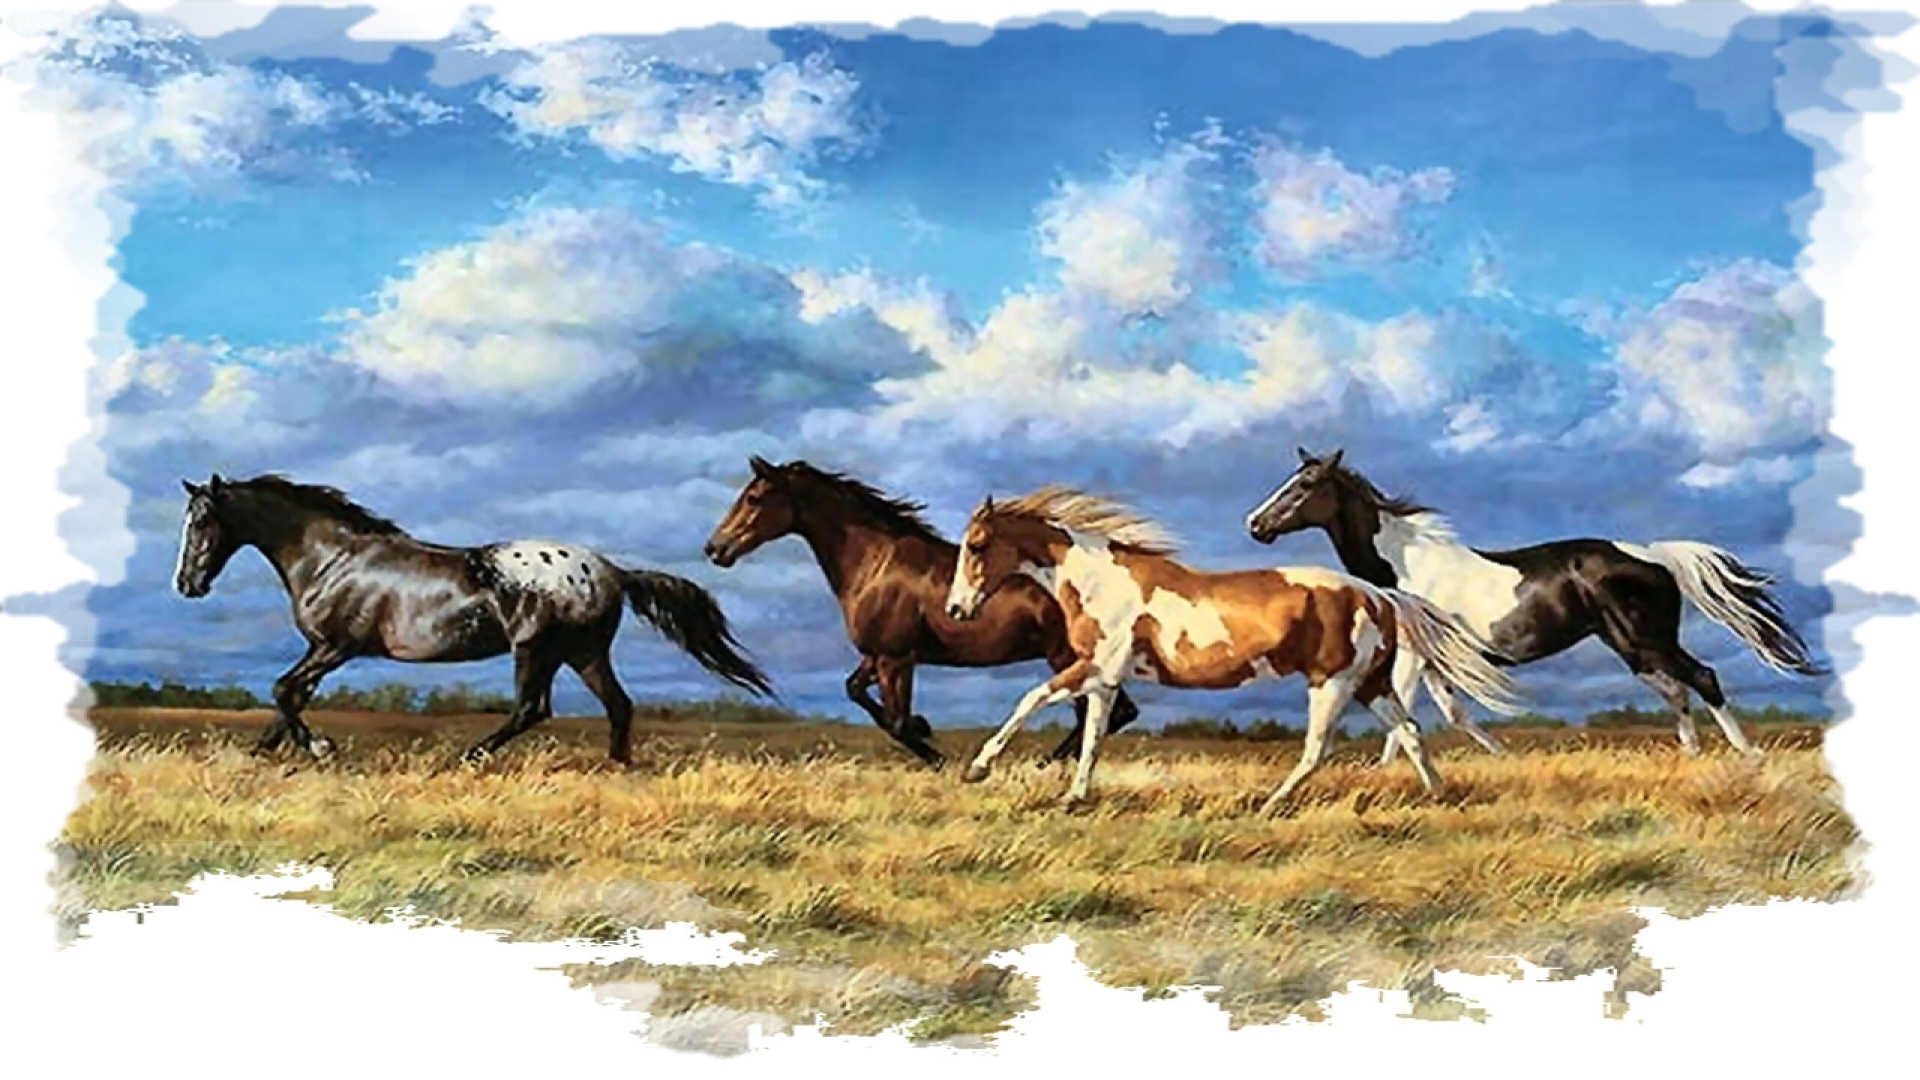 Iphone Cowboys Wallpaper Horse Painting Wallpapers Pictures Images